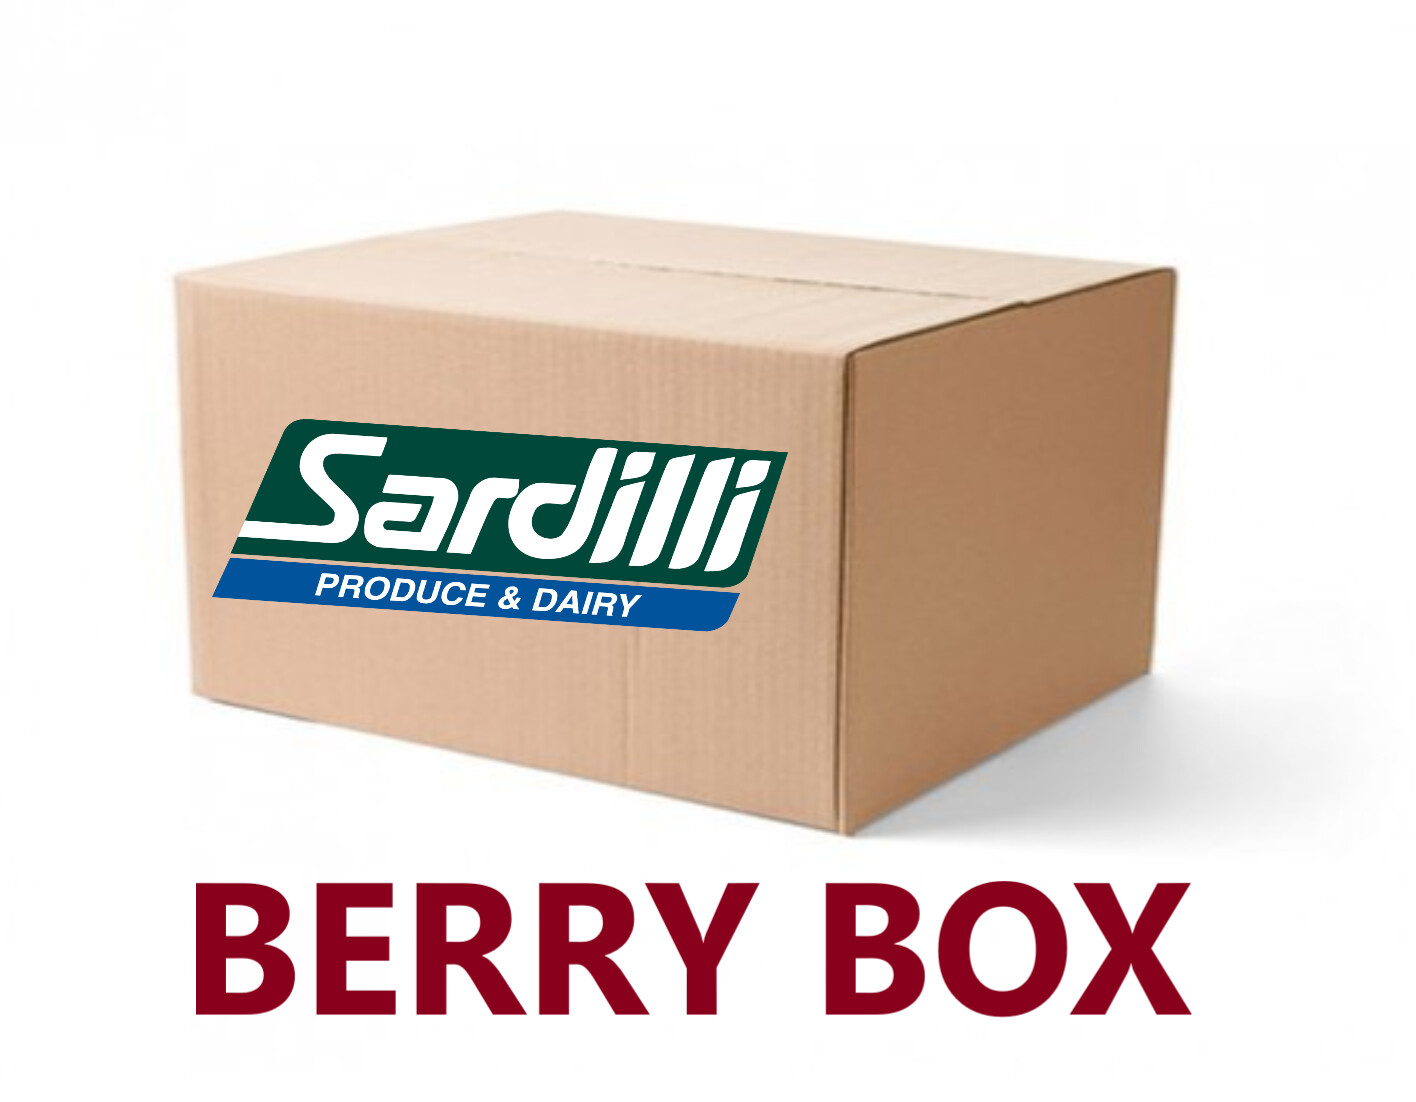 BERRY BOX - WANT JUST BERRIES? MAY 12th PICK UP